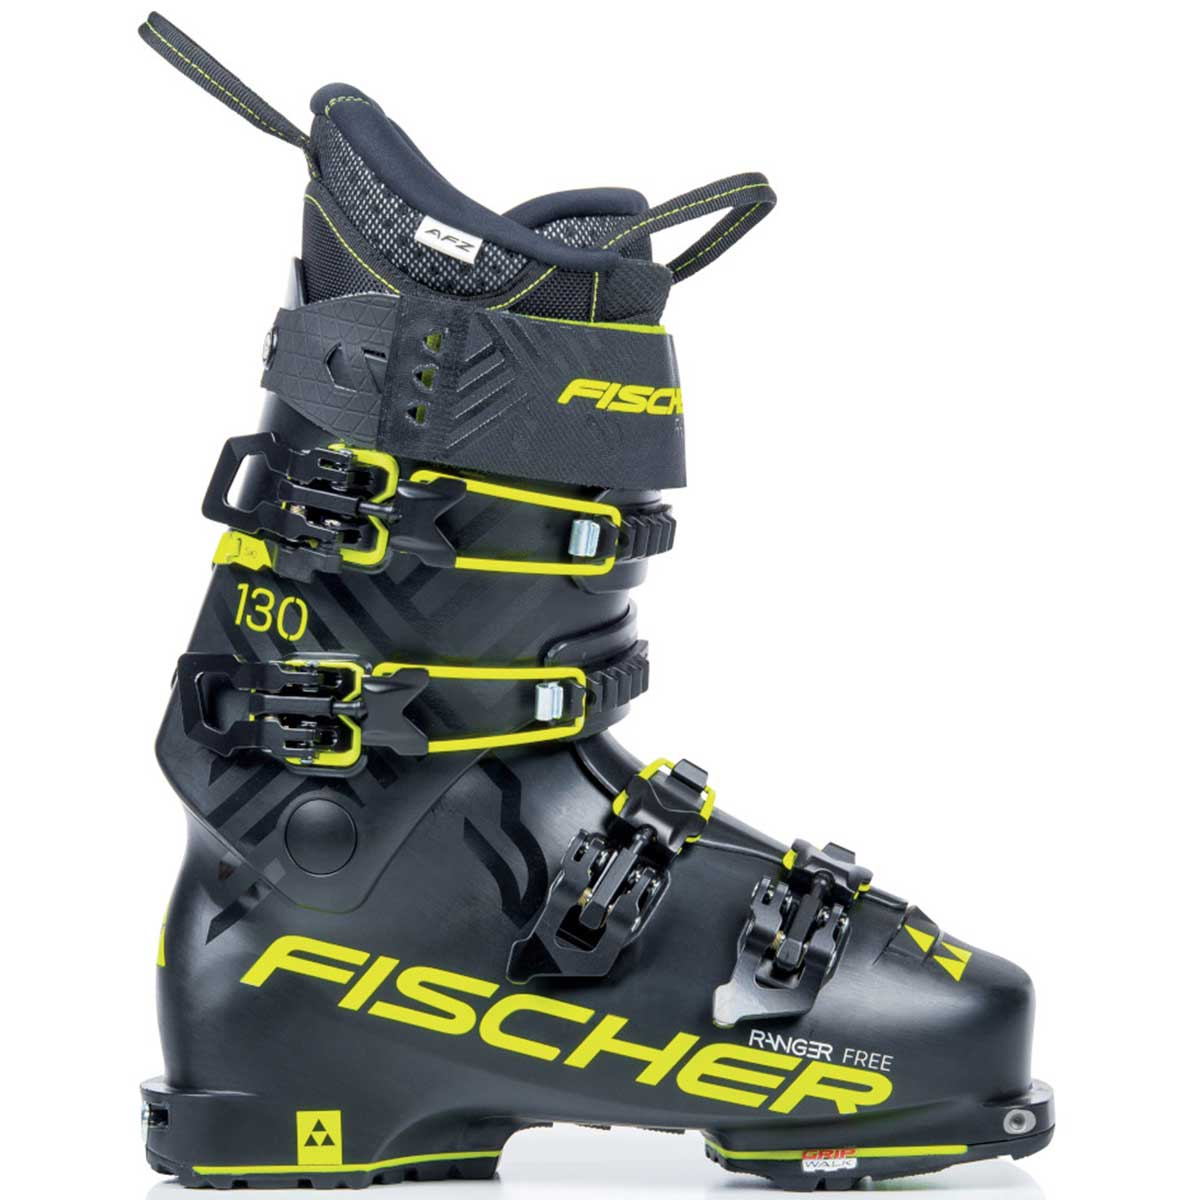 Fischer Men's Ranger Free 130 ski boot in black and yellow